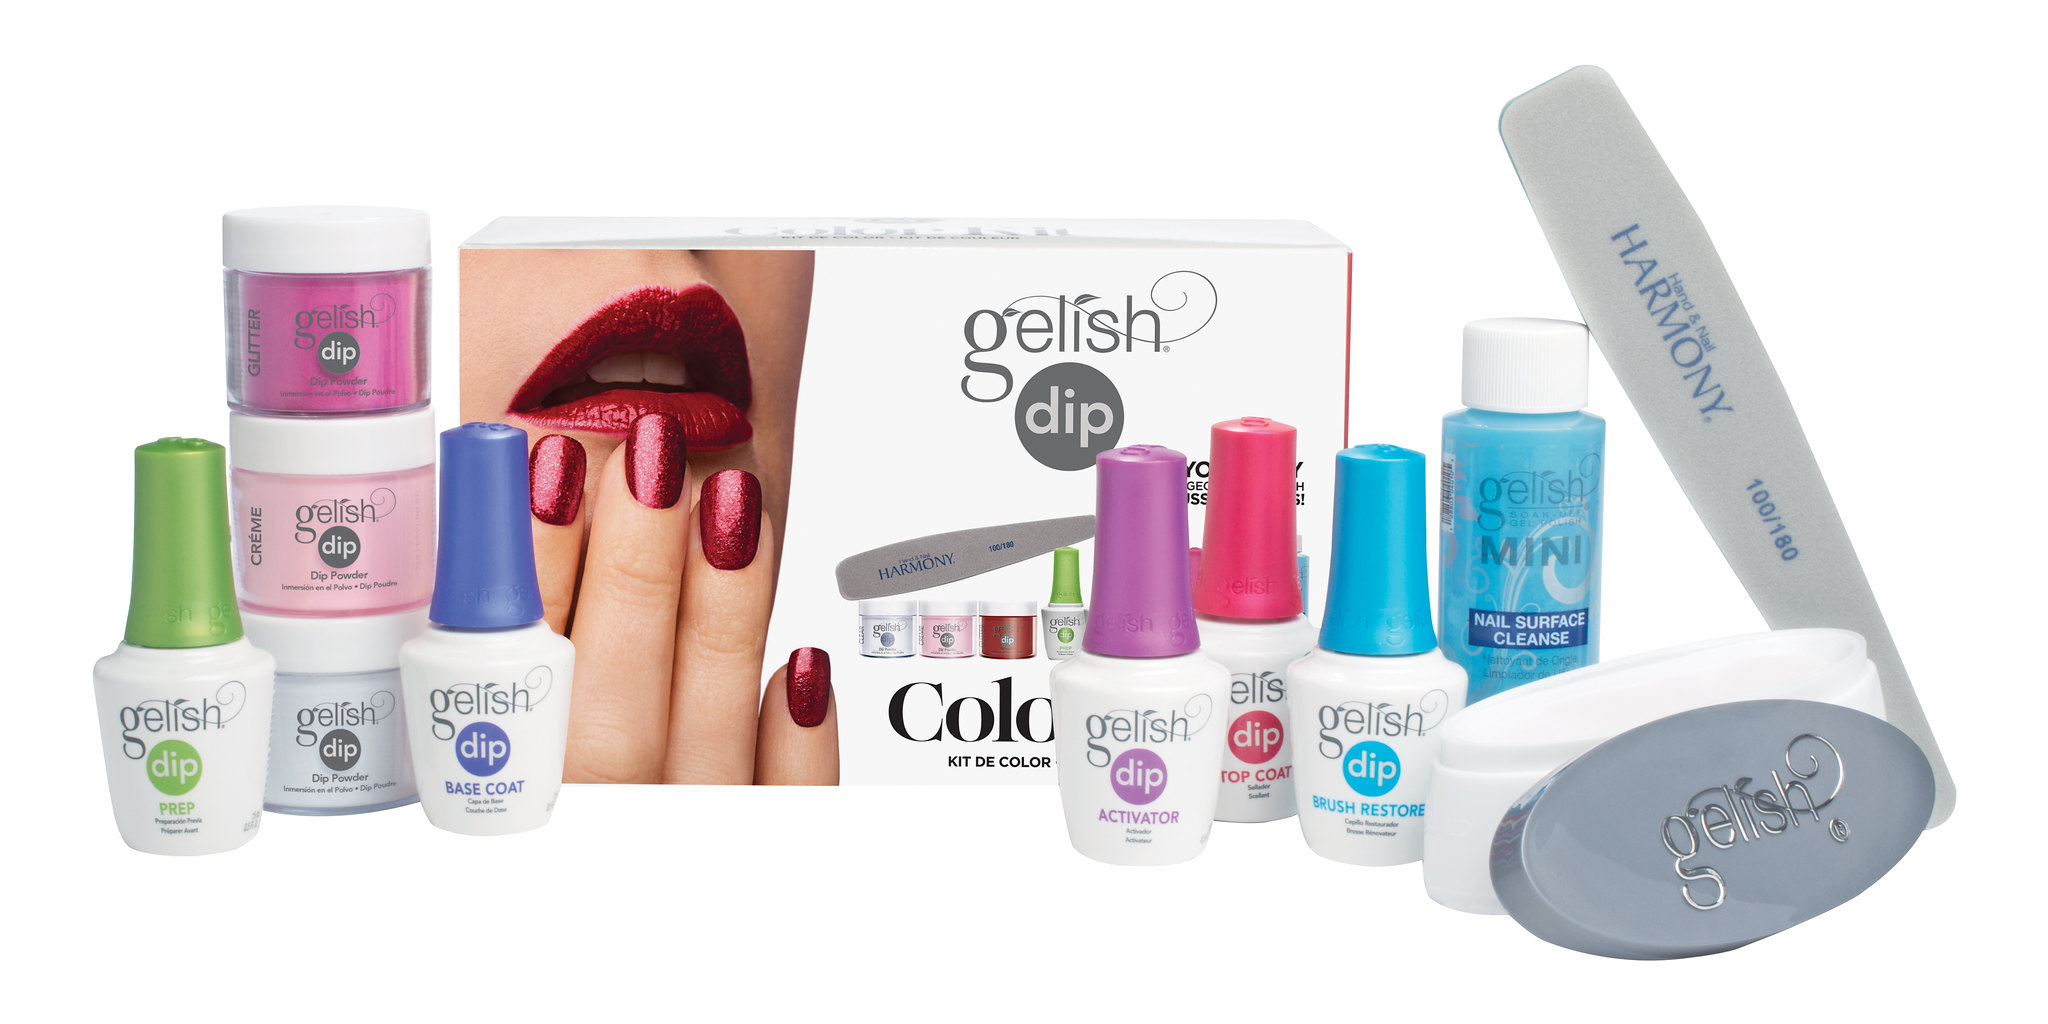 gelish dip philippines review